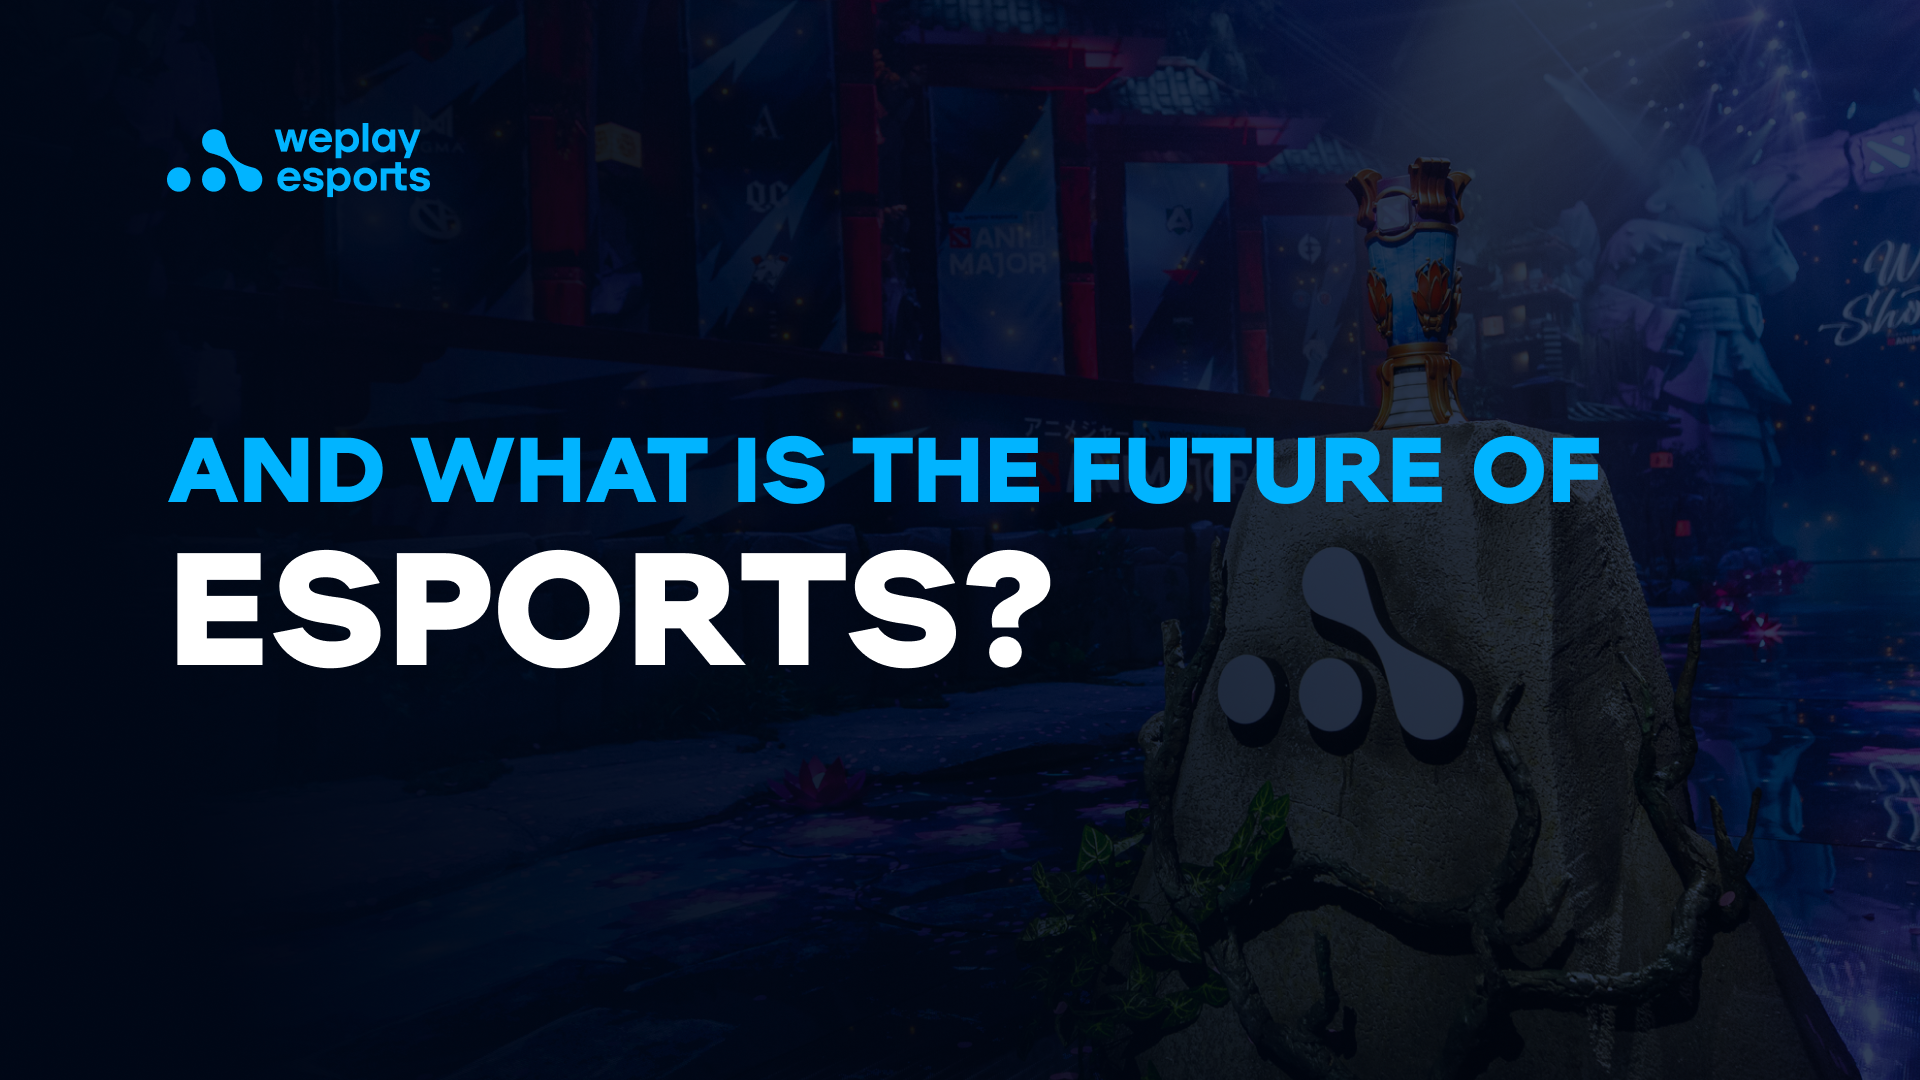 And what is the future of esports?